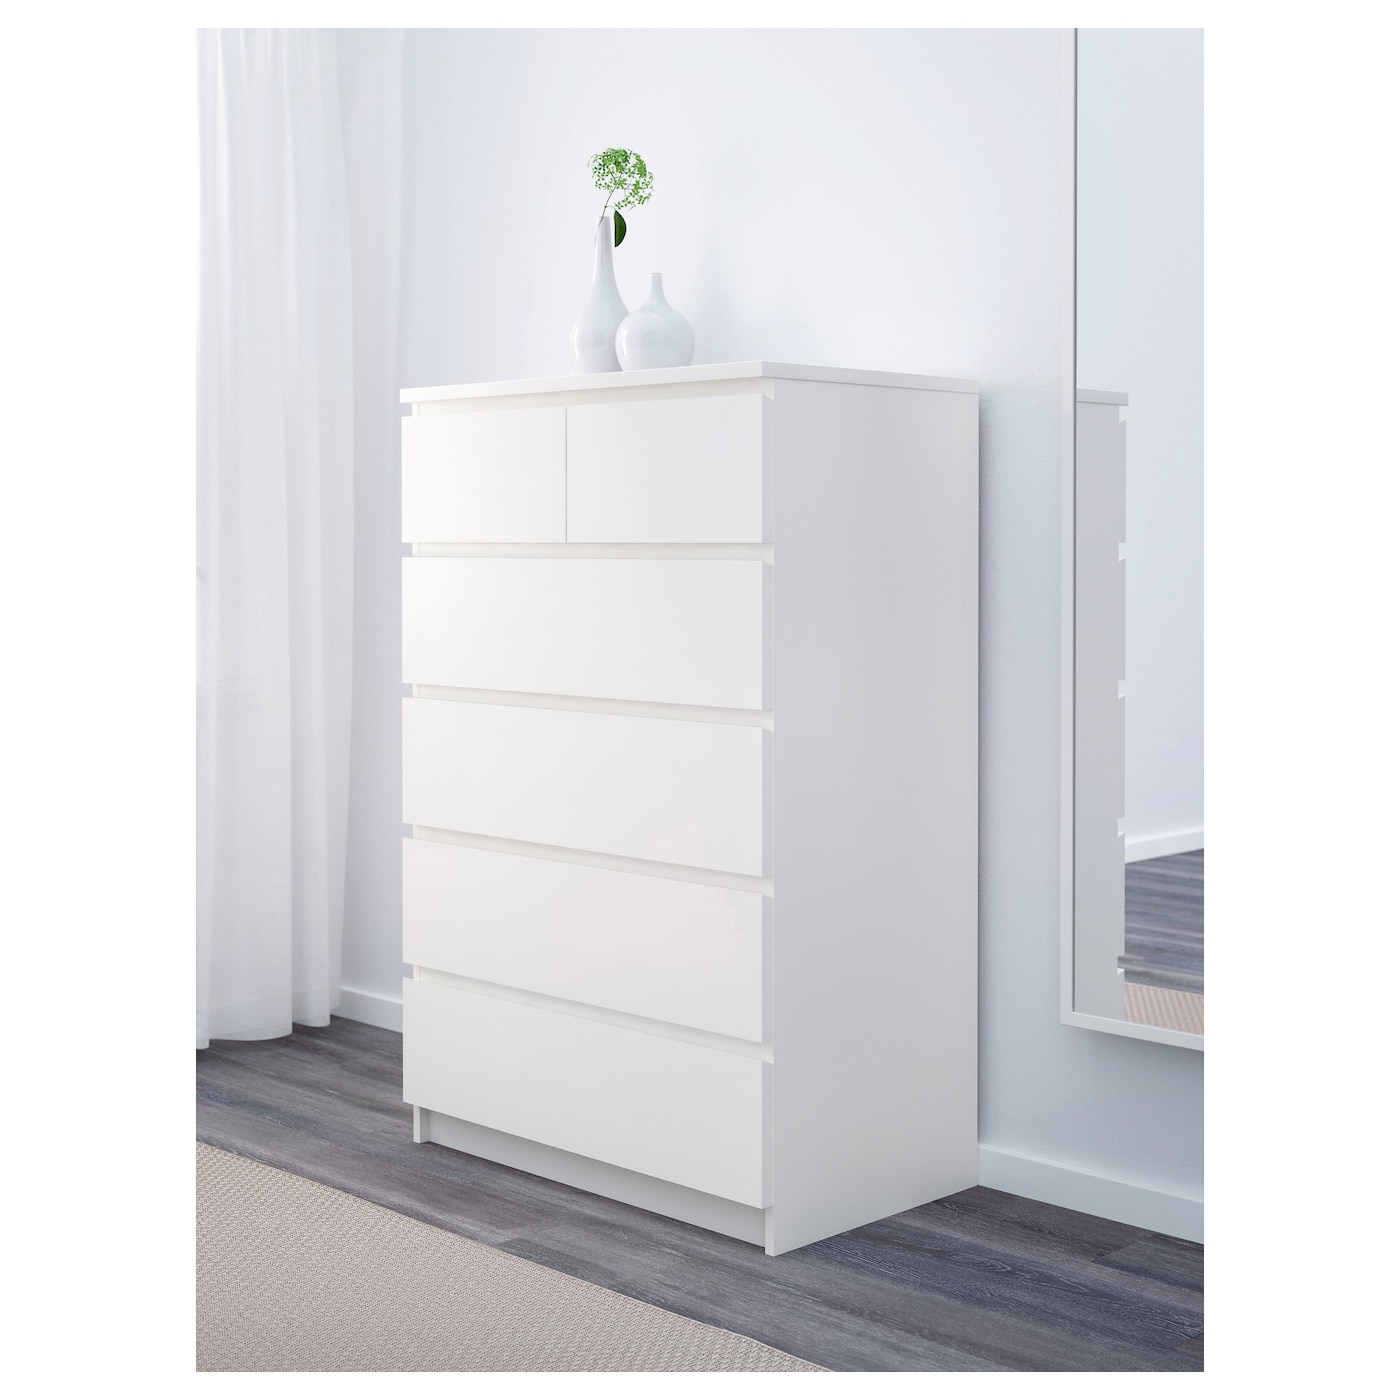 Commode 6 Tiroirs Ikea Nordli Commode 6 Tiroirs Ikea Malm Commode